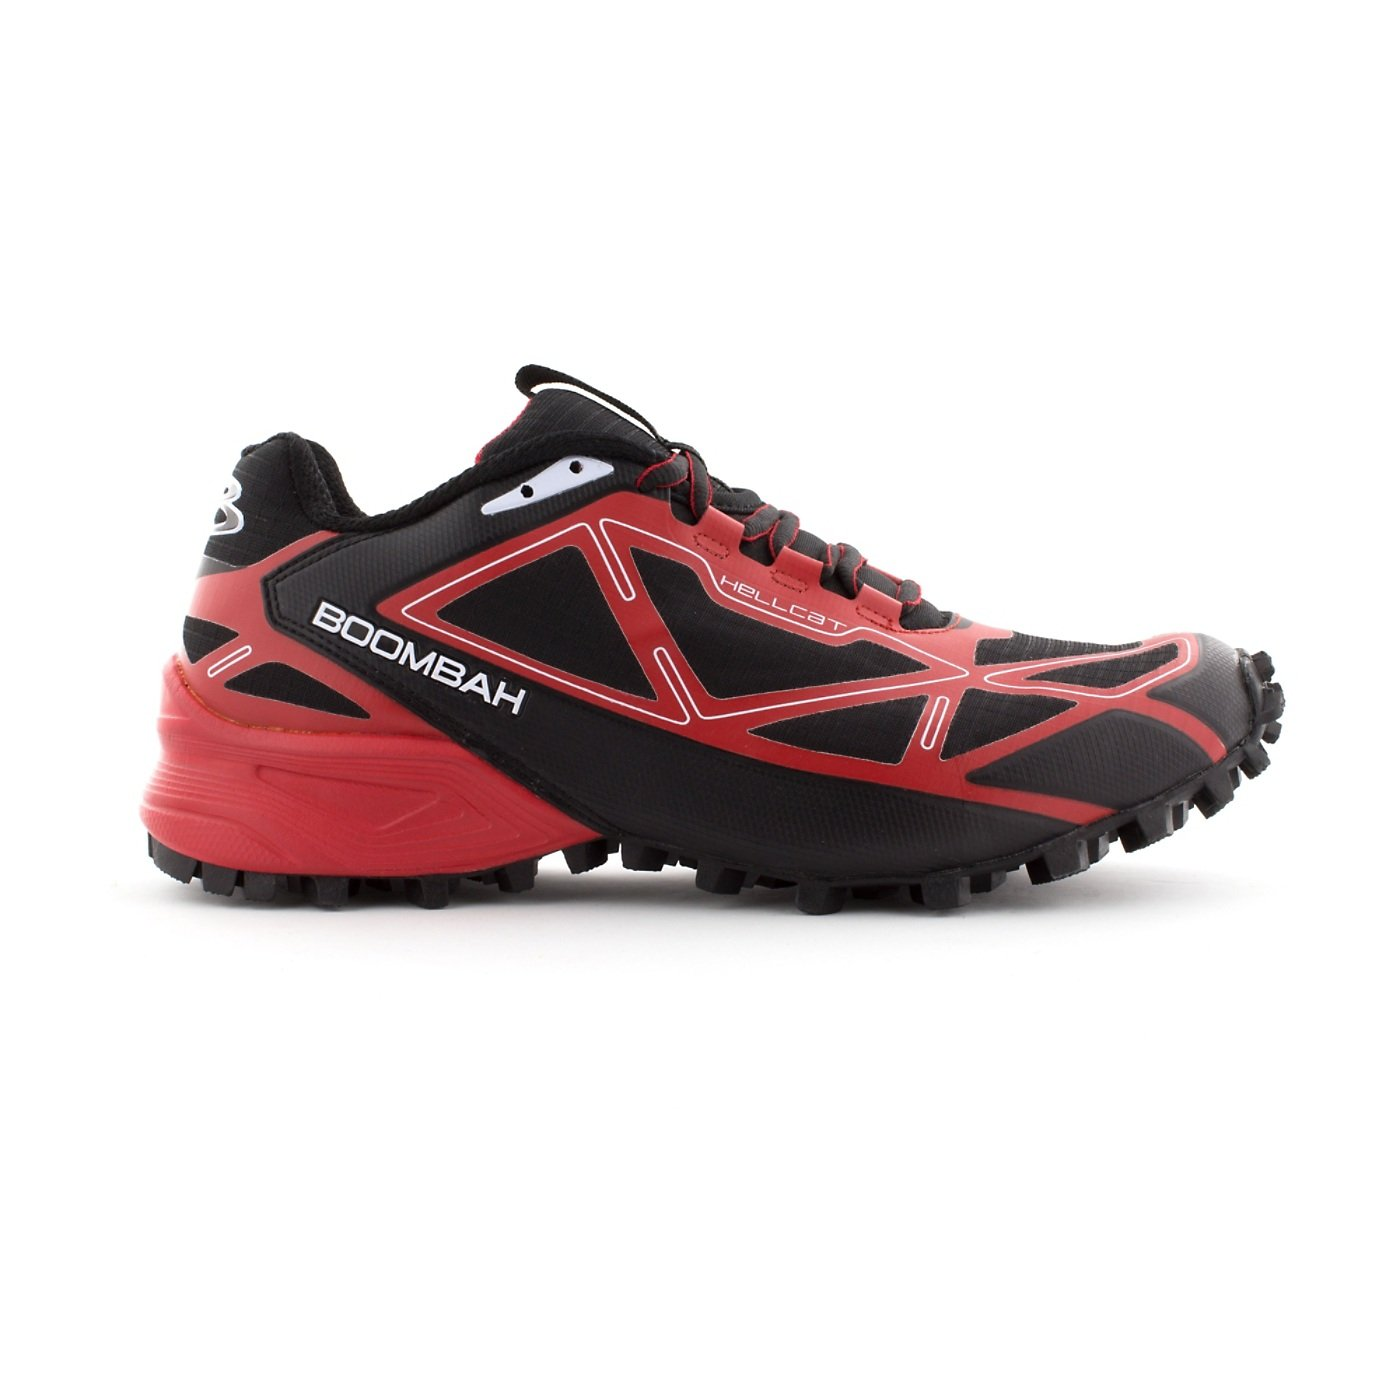 Boombah Men's Hellcat Trail Shoe - 14 Color Options - Multiple Sizes B073X6JT6S 13|Black/Red